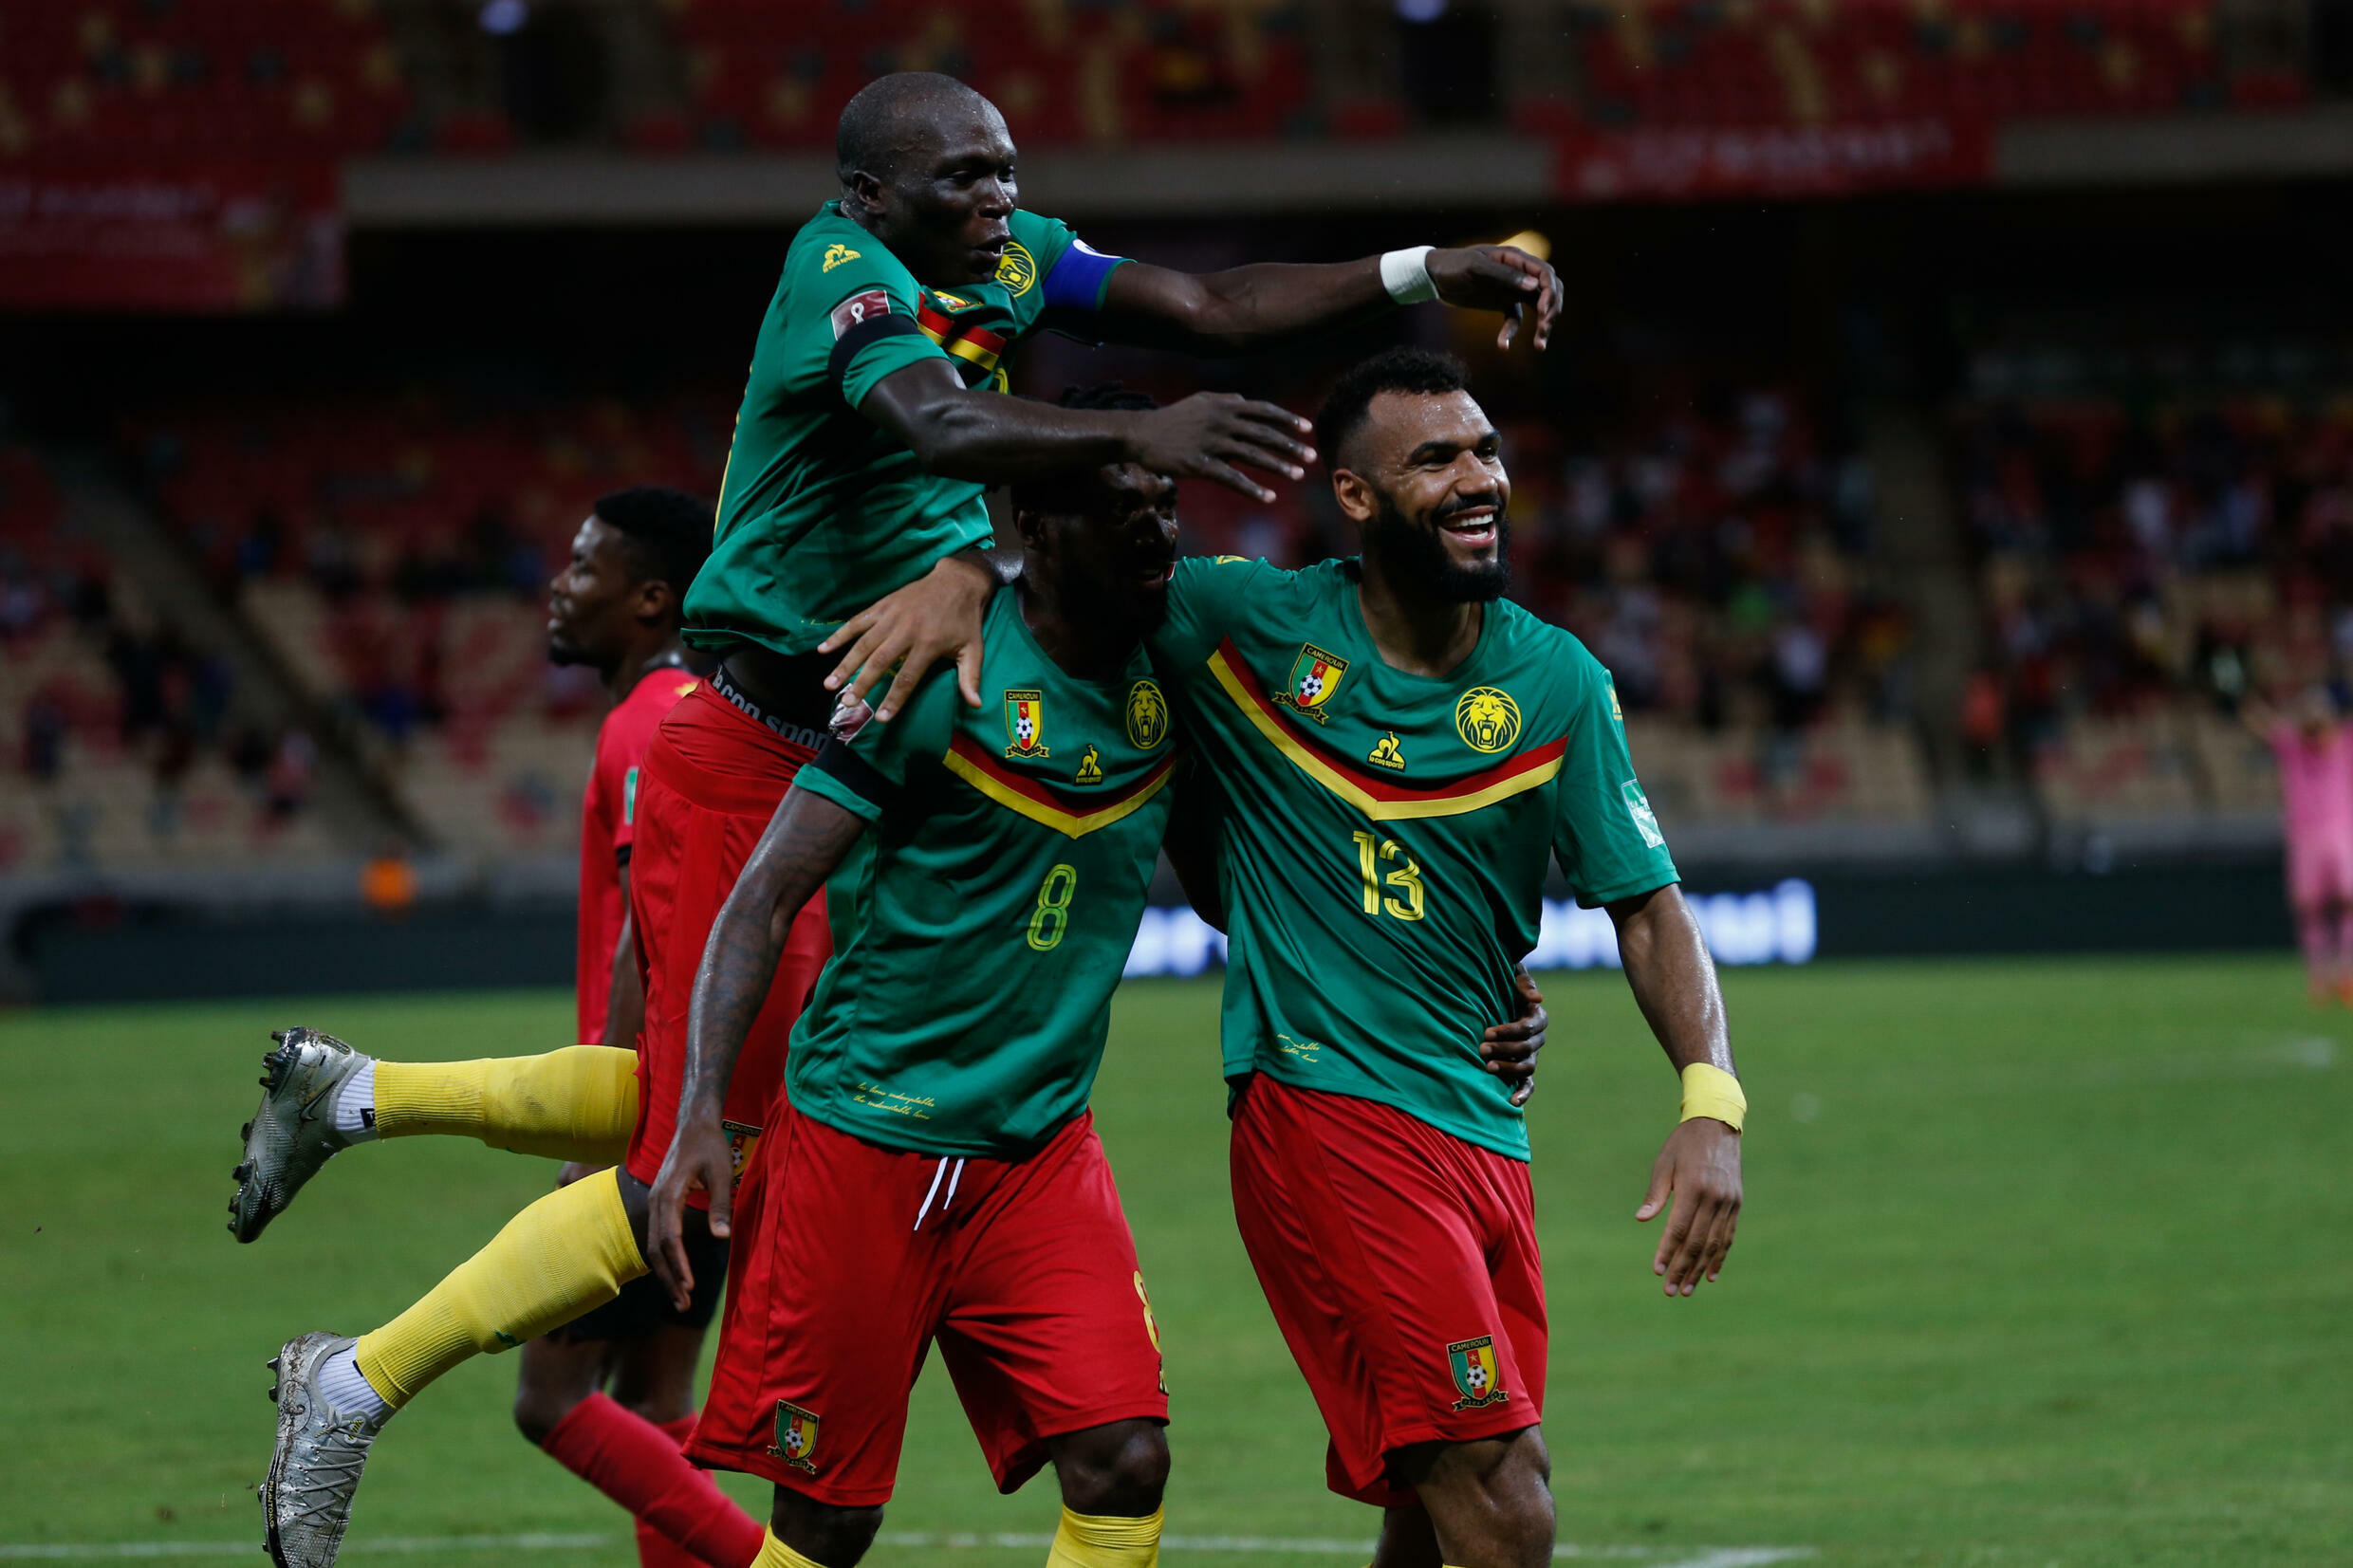 Cameroonian Eric Maxim Choupo-Moting (right) celebrates his goal against Mozambique in a World Cup qualifying match in Douala on Friday.